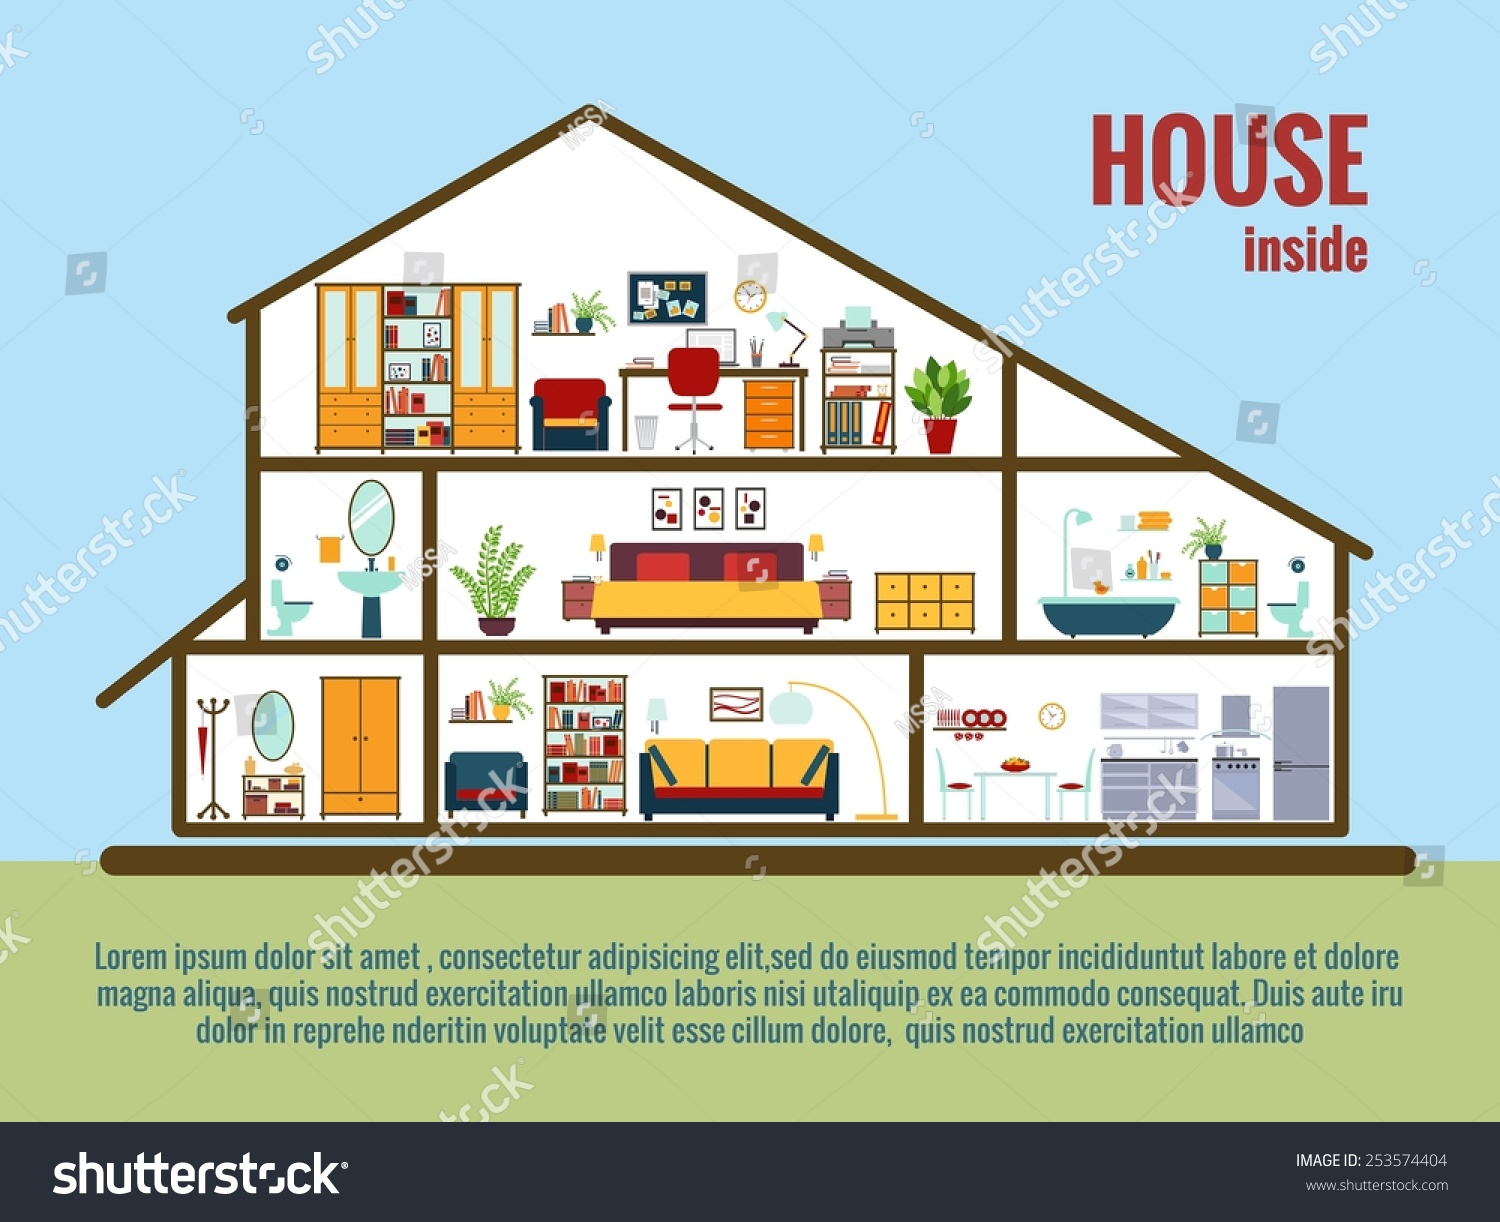 house side view clipart - photo #11